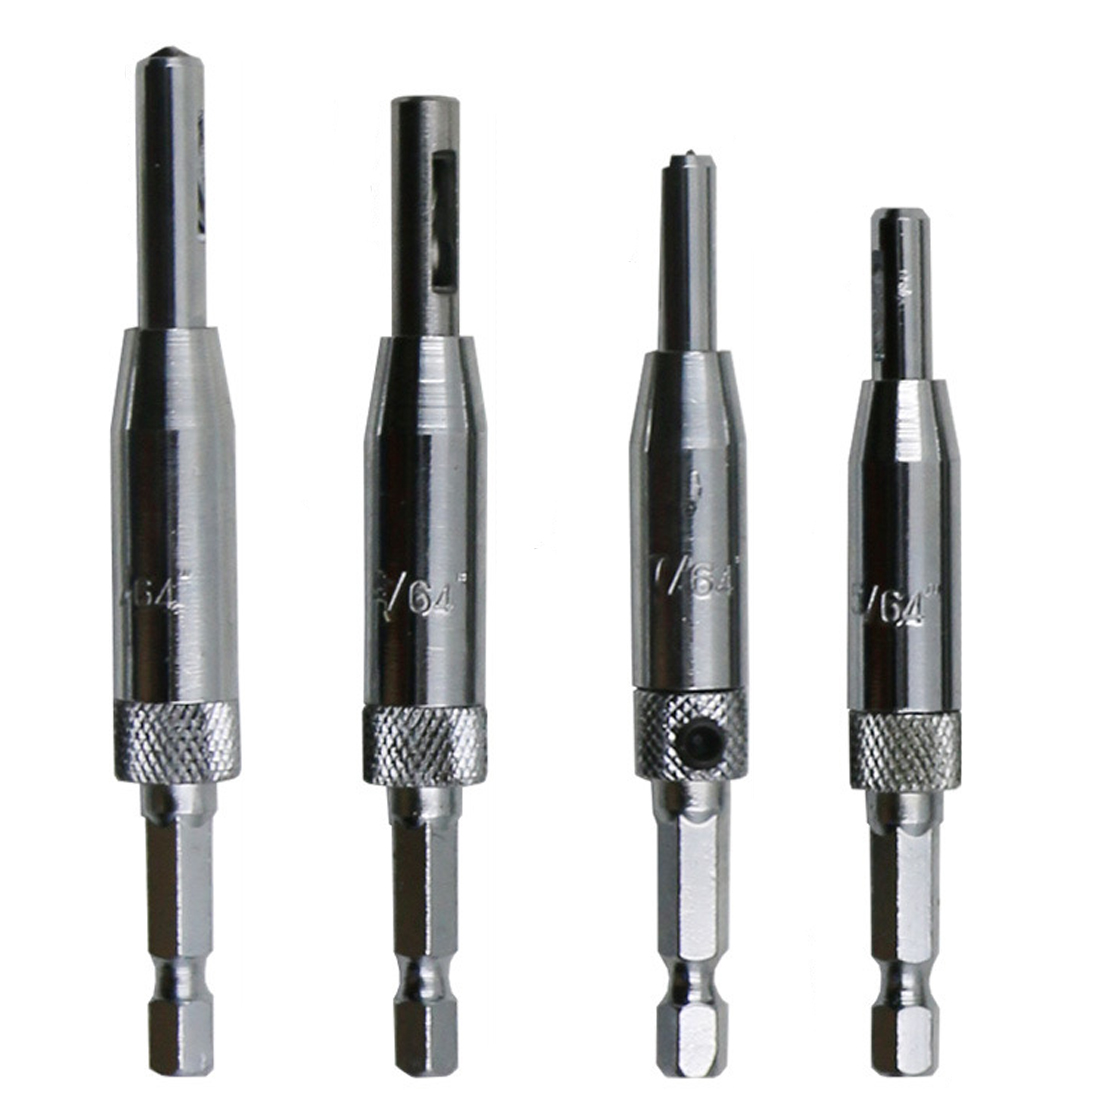 4pcs/lot HSS Self Centering Drill Bits Hinge Drill Bit Door Cabinet 5/64 7/64 9/64 11/64 For Carpenter Furniture Makers